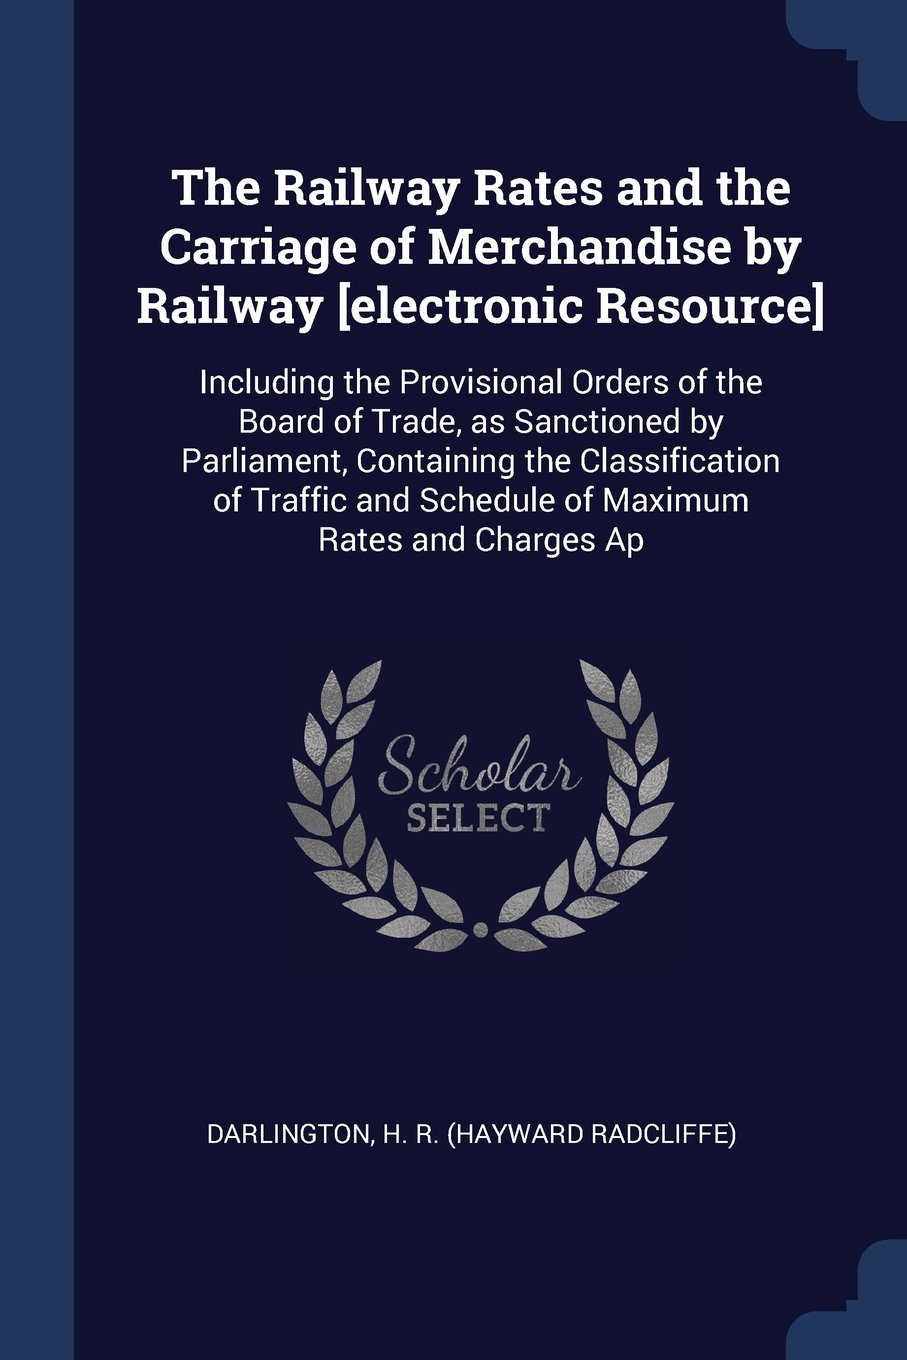 The Railway Rates and the Carriage of Merchandise by Railway [electronic Resource]: Including the Provisional Orders of the Board of Trade, as ... and Schedule of Maximum Rates and Charges Ap ebook